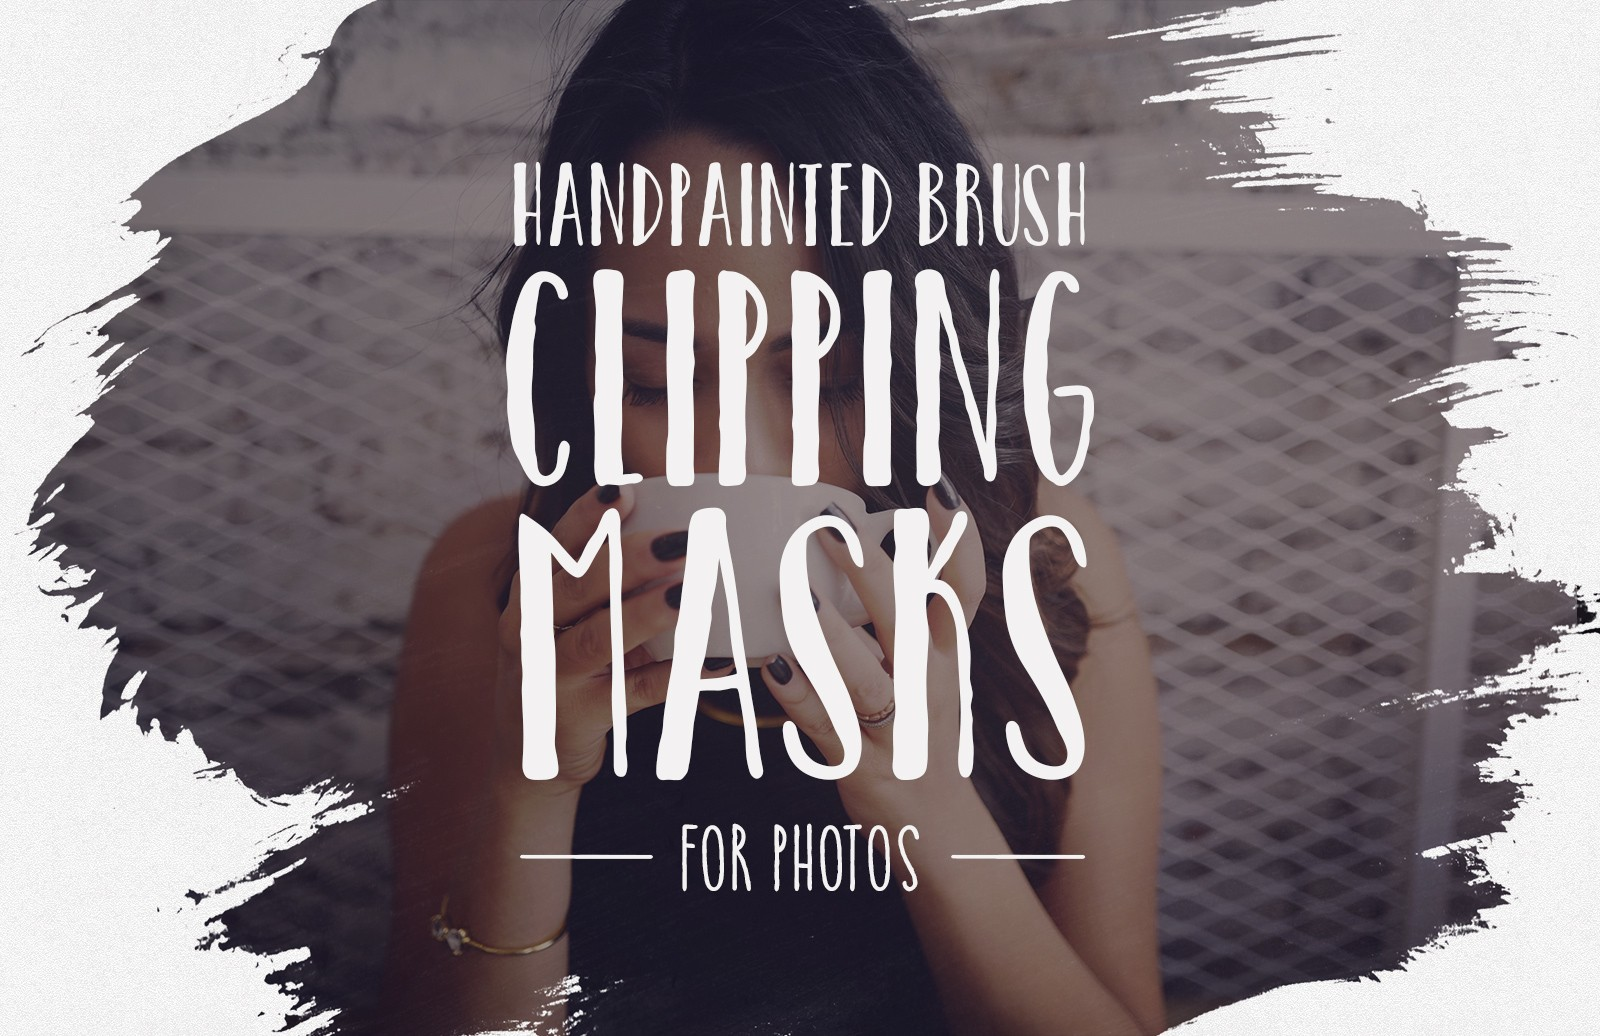 Large Hand  Painted  Brush  Clipping  Masks  Preview 1